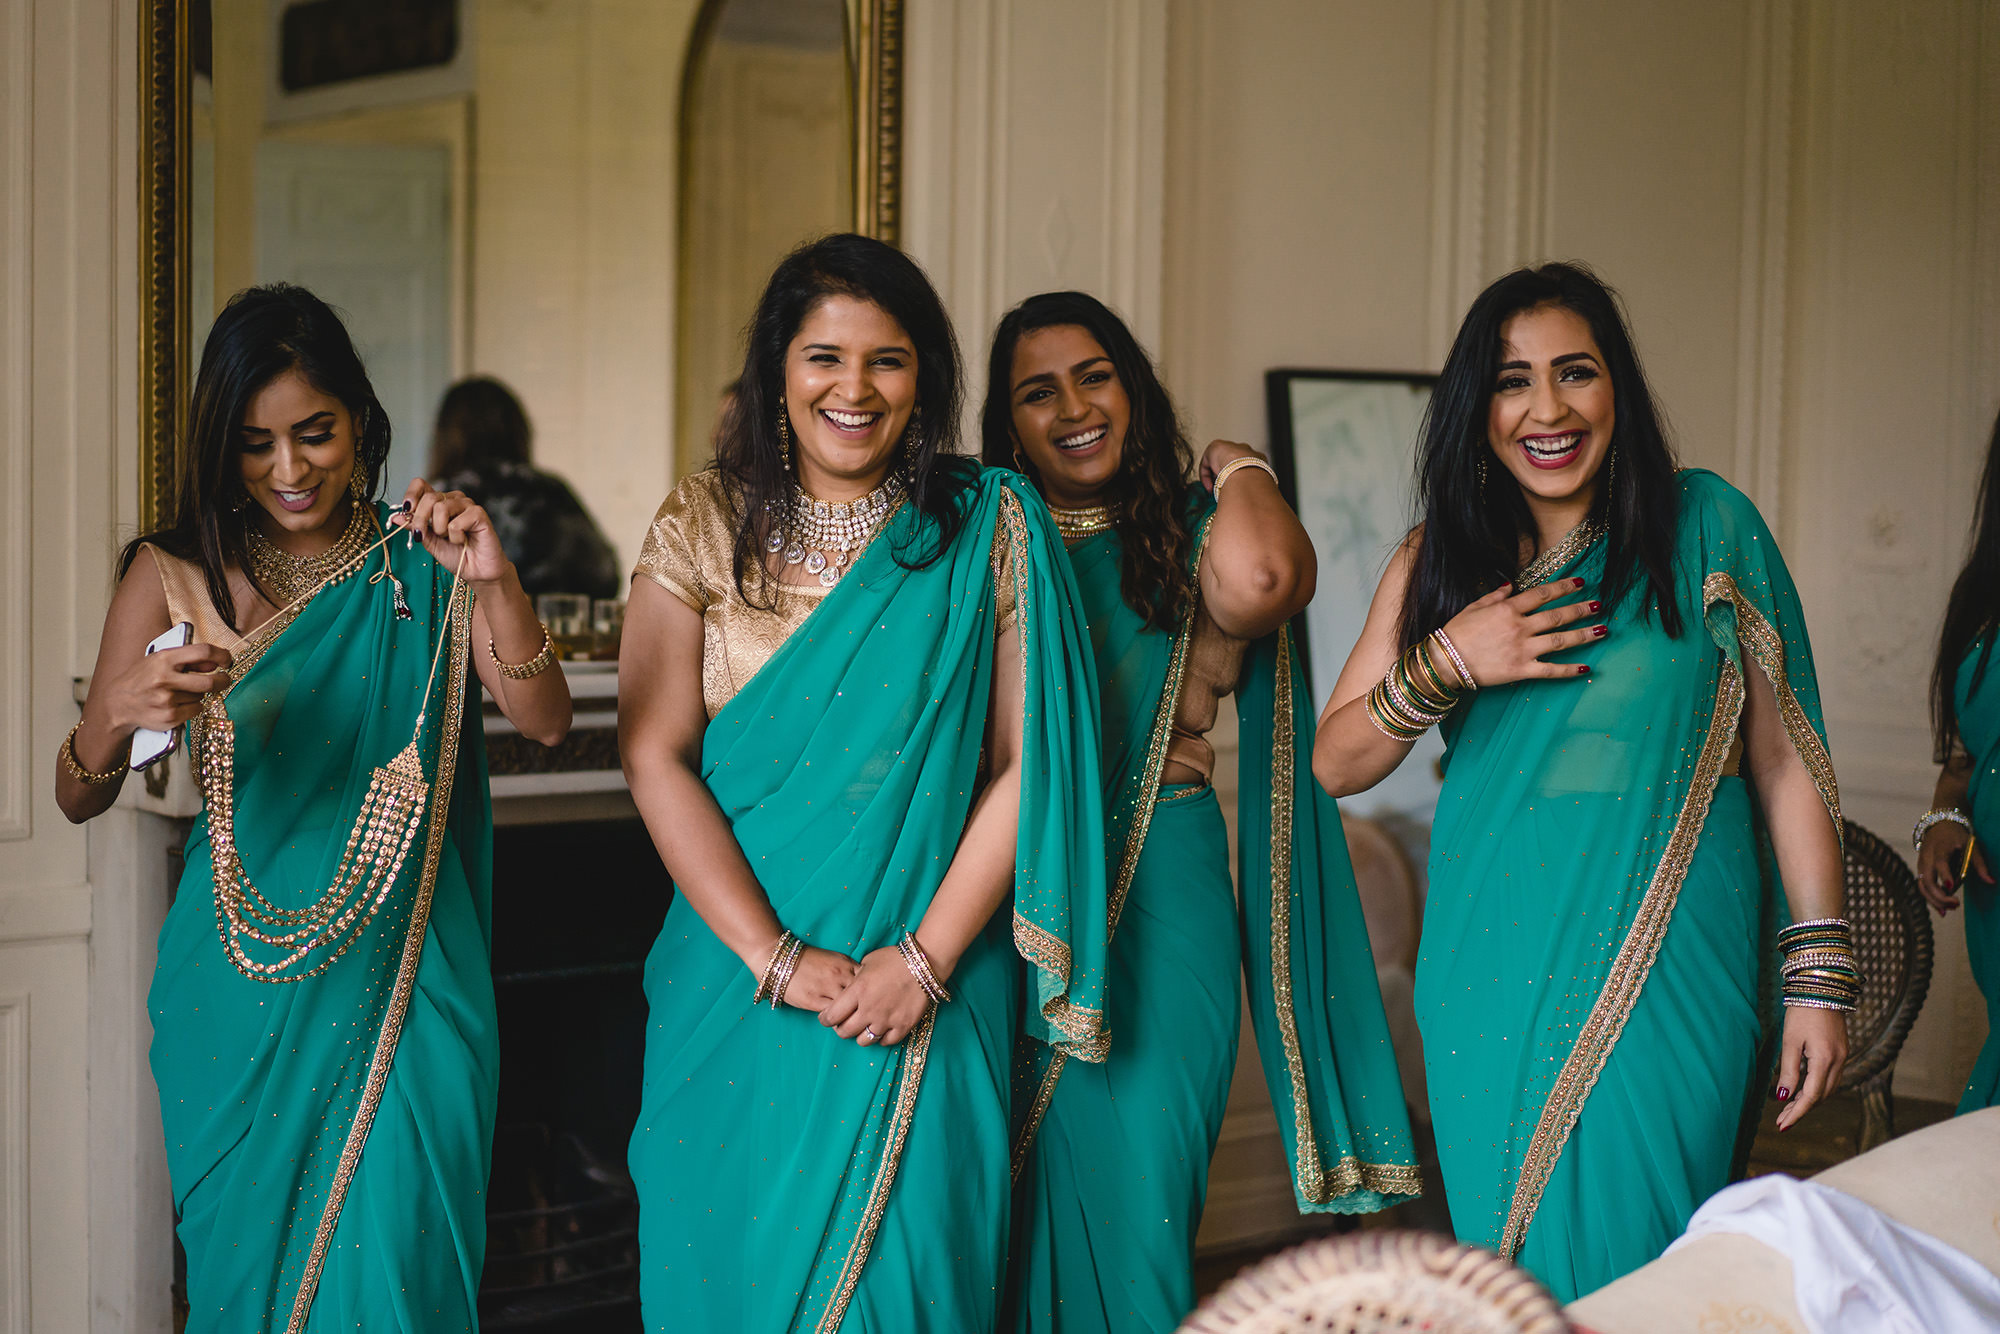 bridesmaids seeing the bride and showing excitement in green bridesmaids outfits